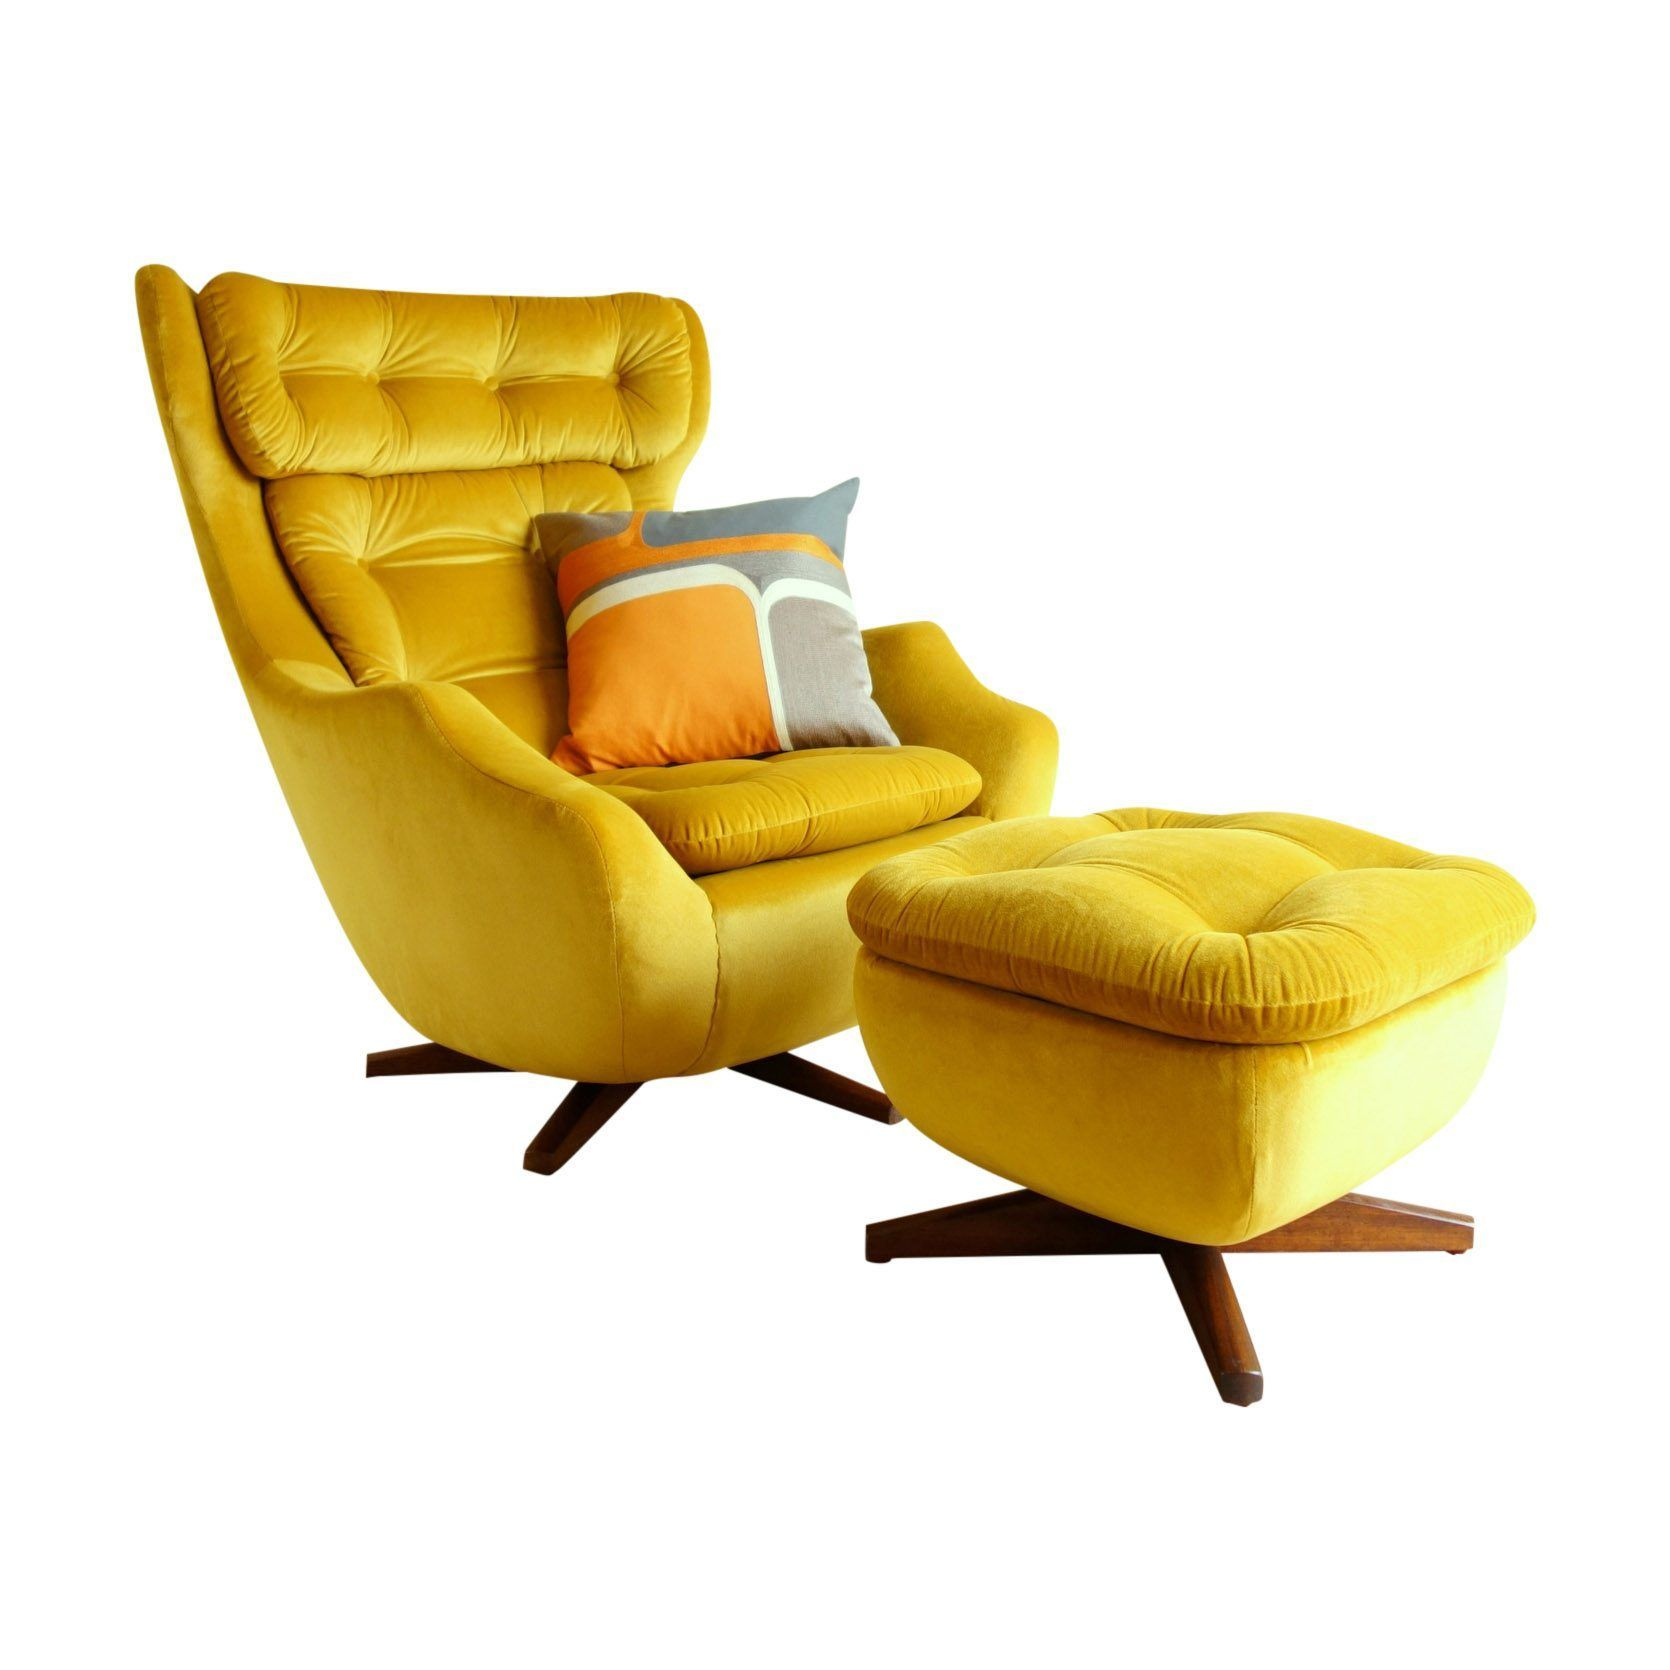 92 Reference Of Yellow Armchair And Footstool In 2020 Yellow Armchair Velvet Dining Room Chairs Slipcovers For Chairs